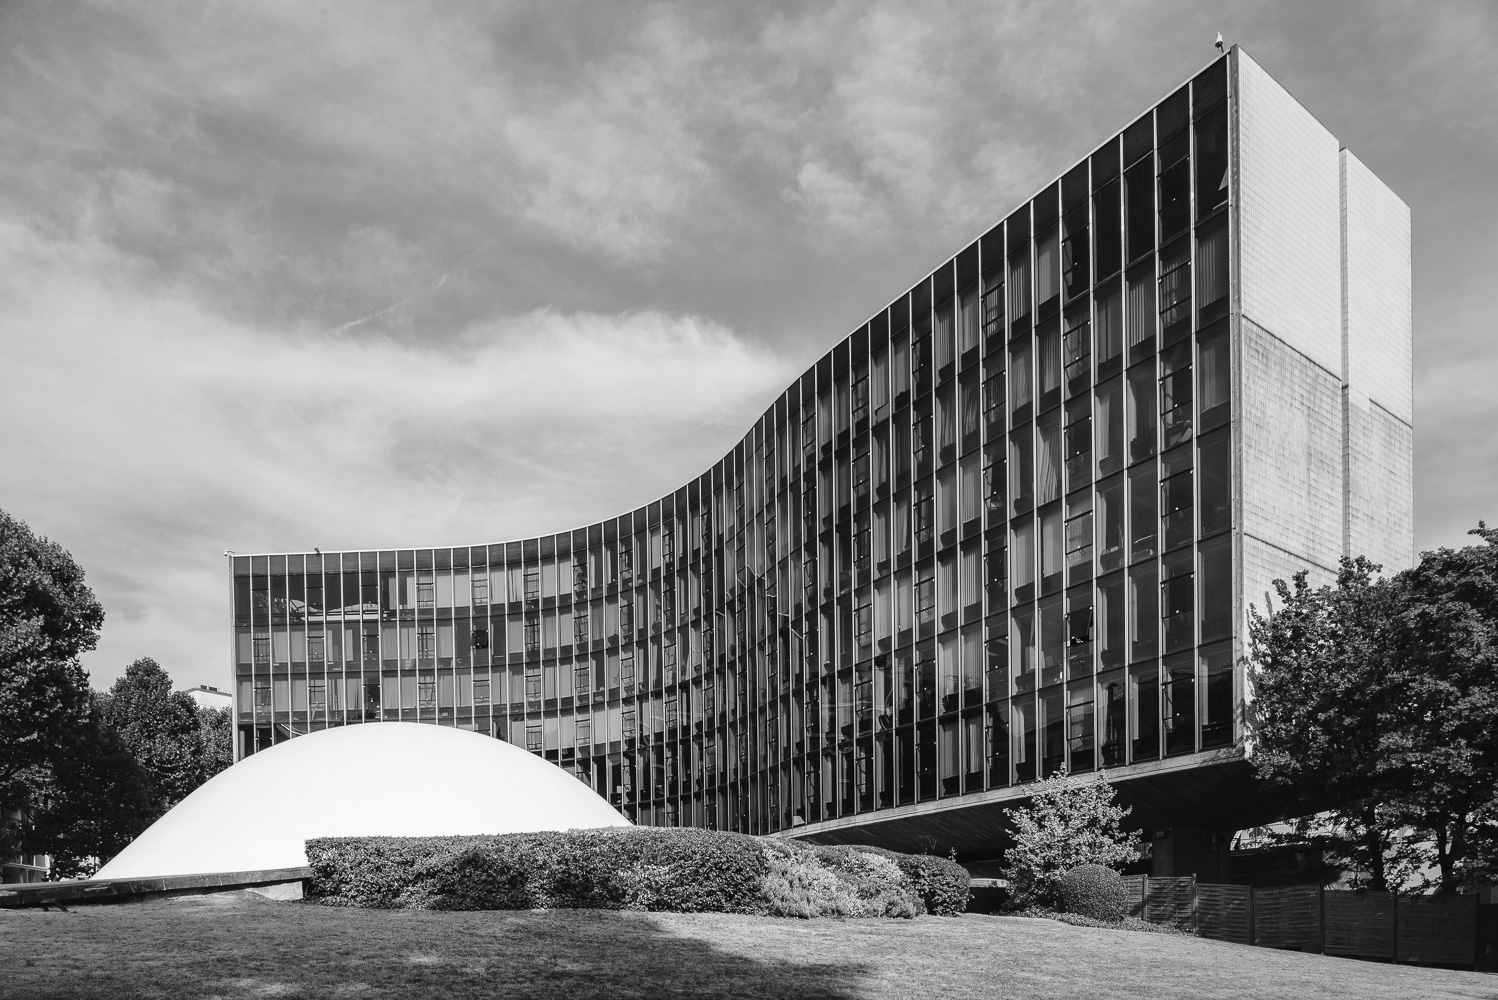 dacian-groza-concrete-black-and-white-architectural-photography-31-1381.jpg